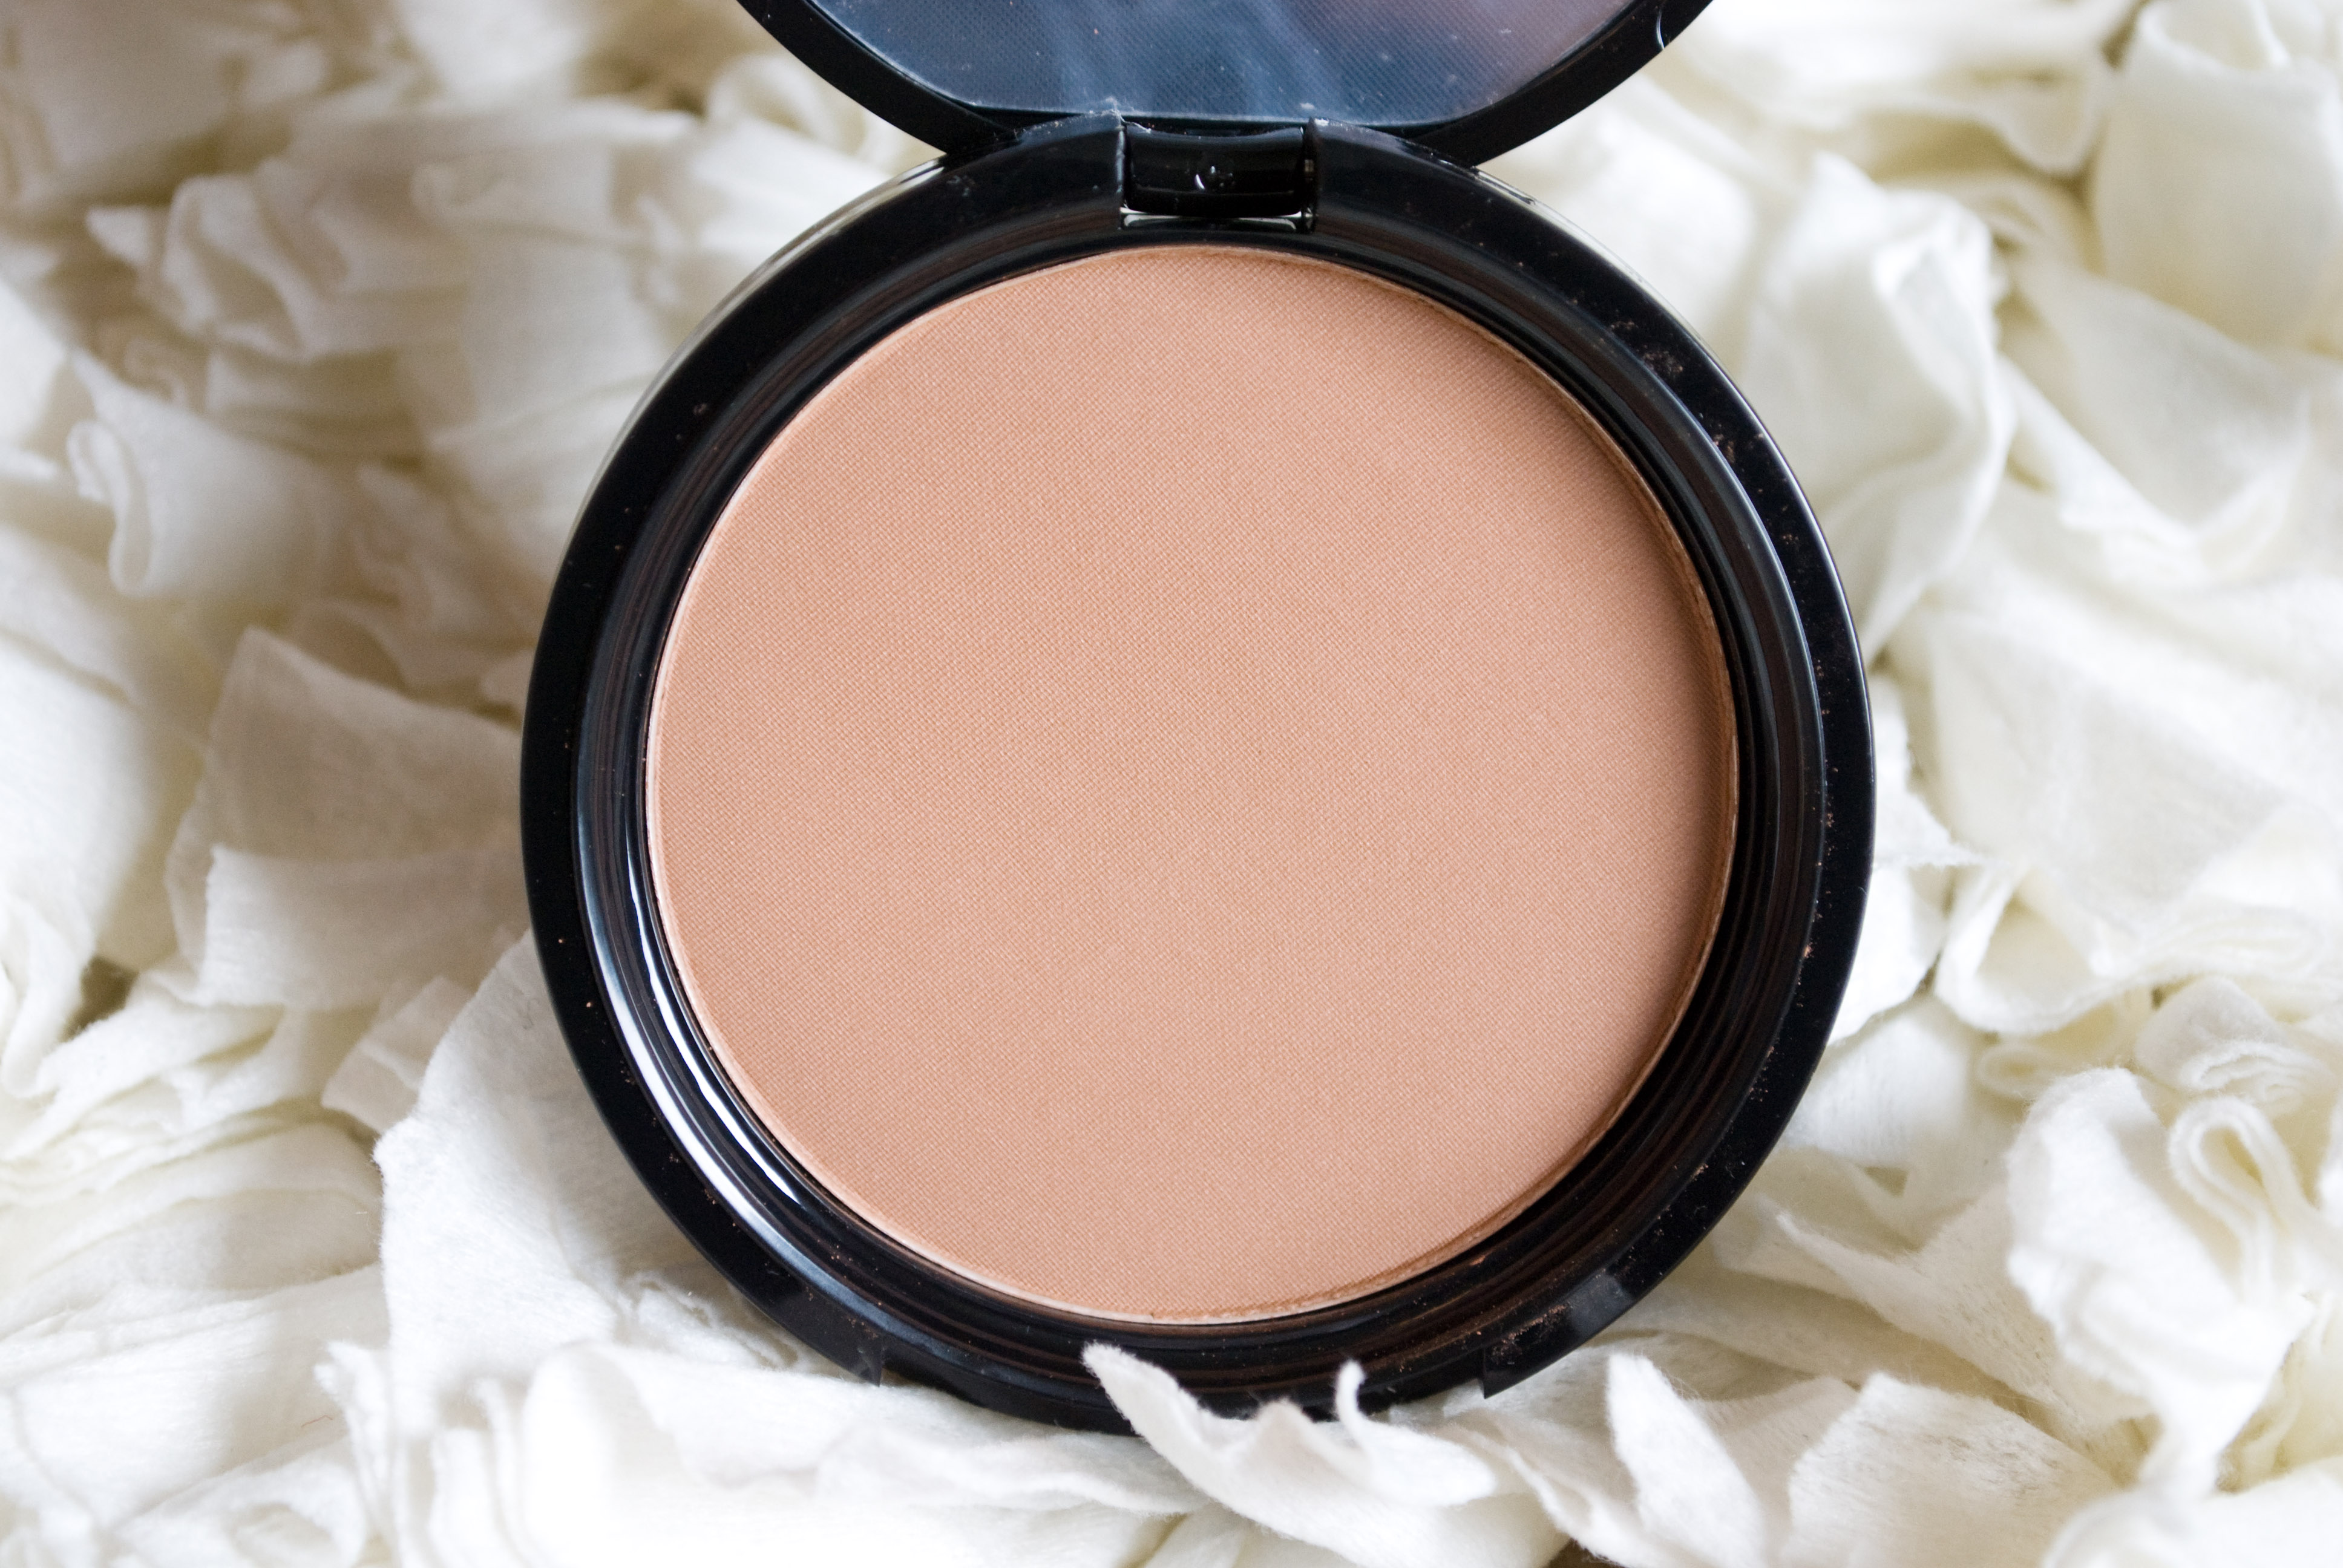 Bronzed Beauty with NYX Matte Bronzer  http://honeygirlsworld.com